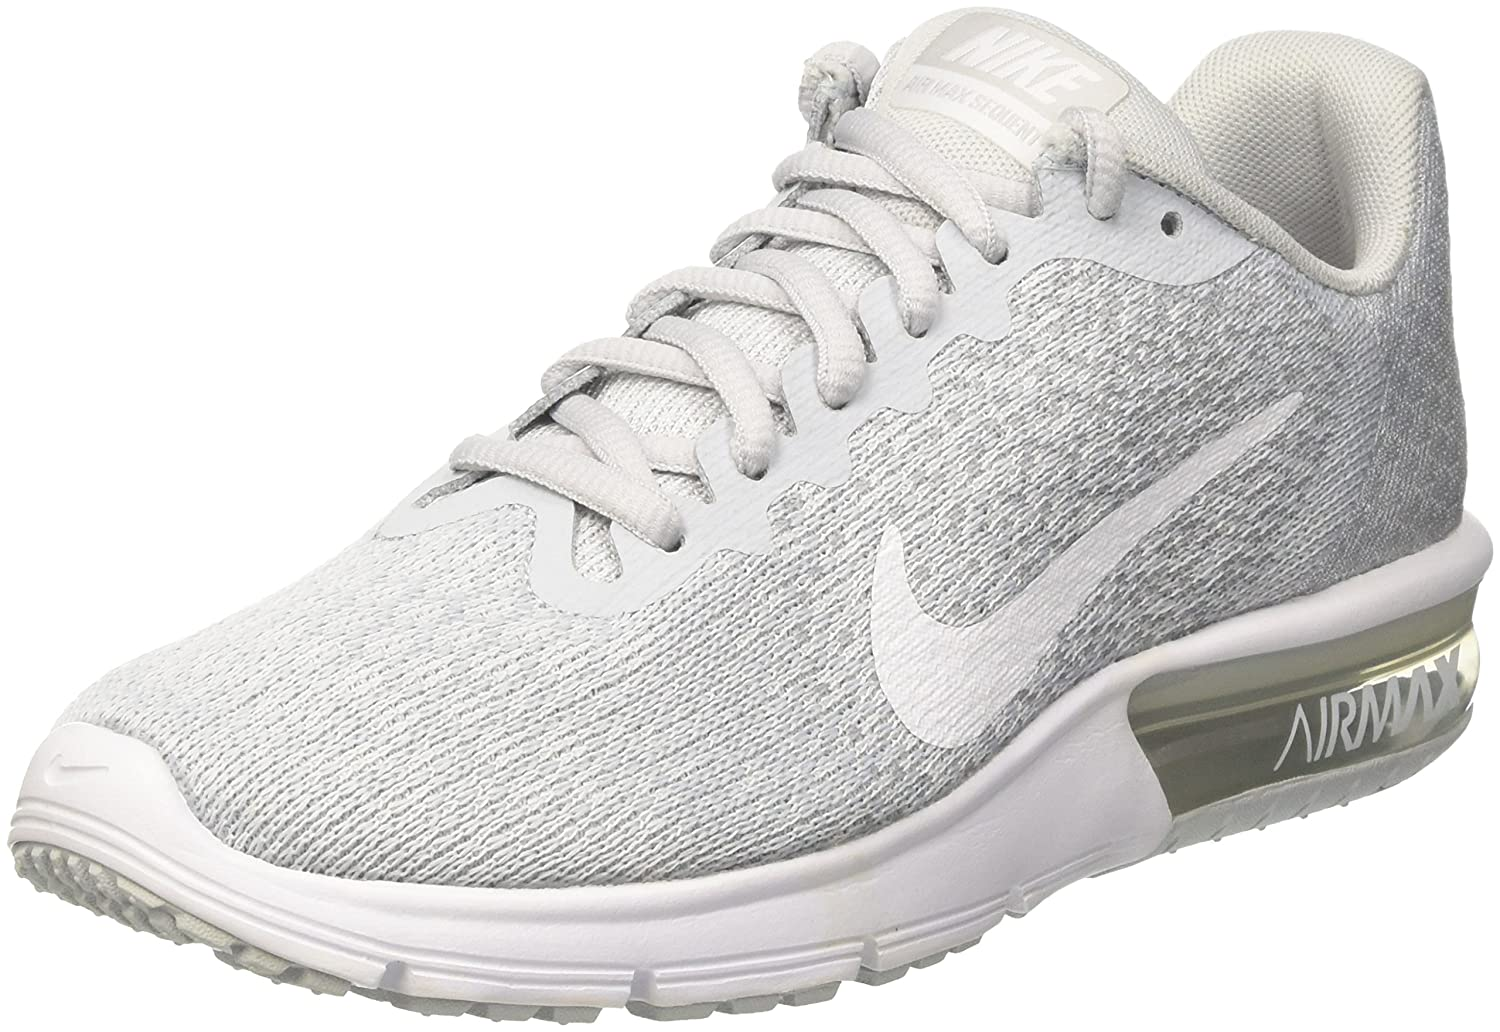 outlet store 41e1a 61ca5 Nike Air Max Sequent 2 Pure Platinum White Wolf Grey Women Running Shoes  Size 8.5